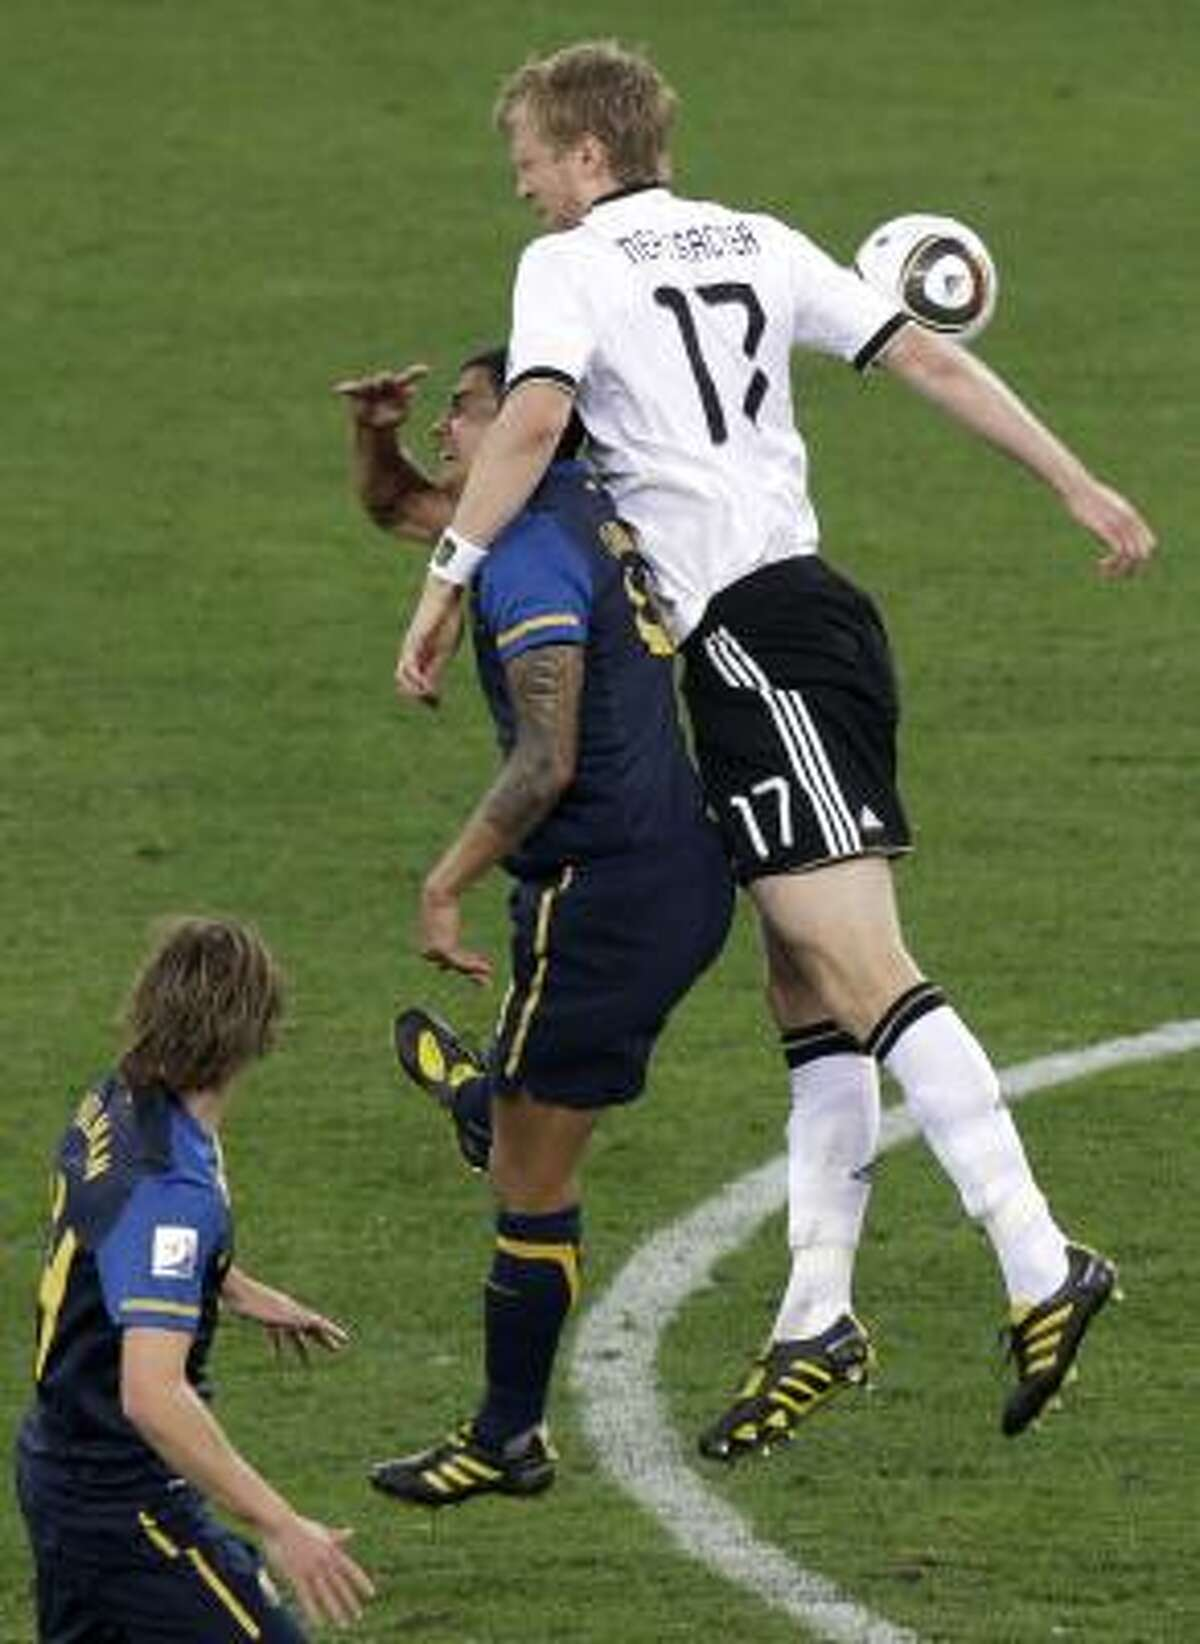 Germany's Per Mertesacker goes over Australia's Tim Cahill in a battle for the ball.